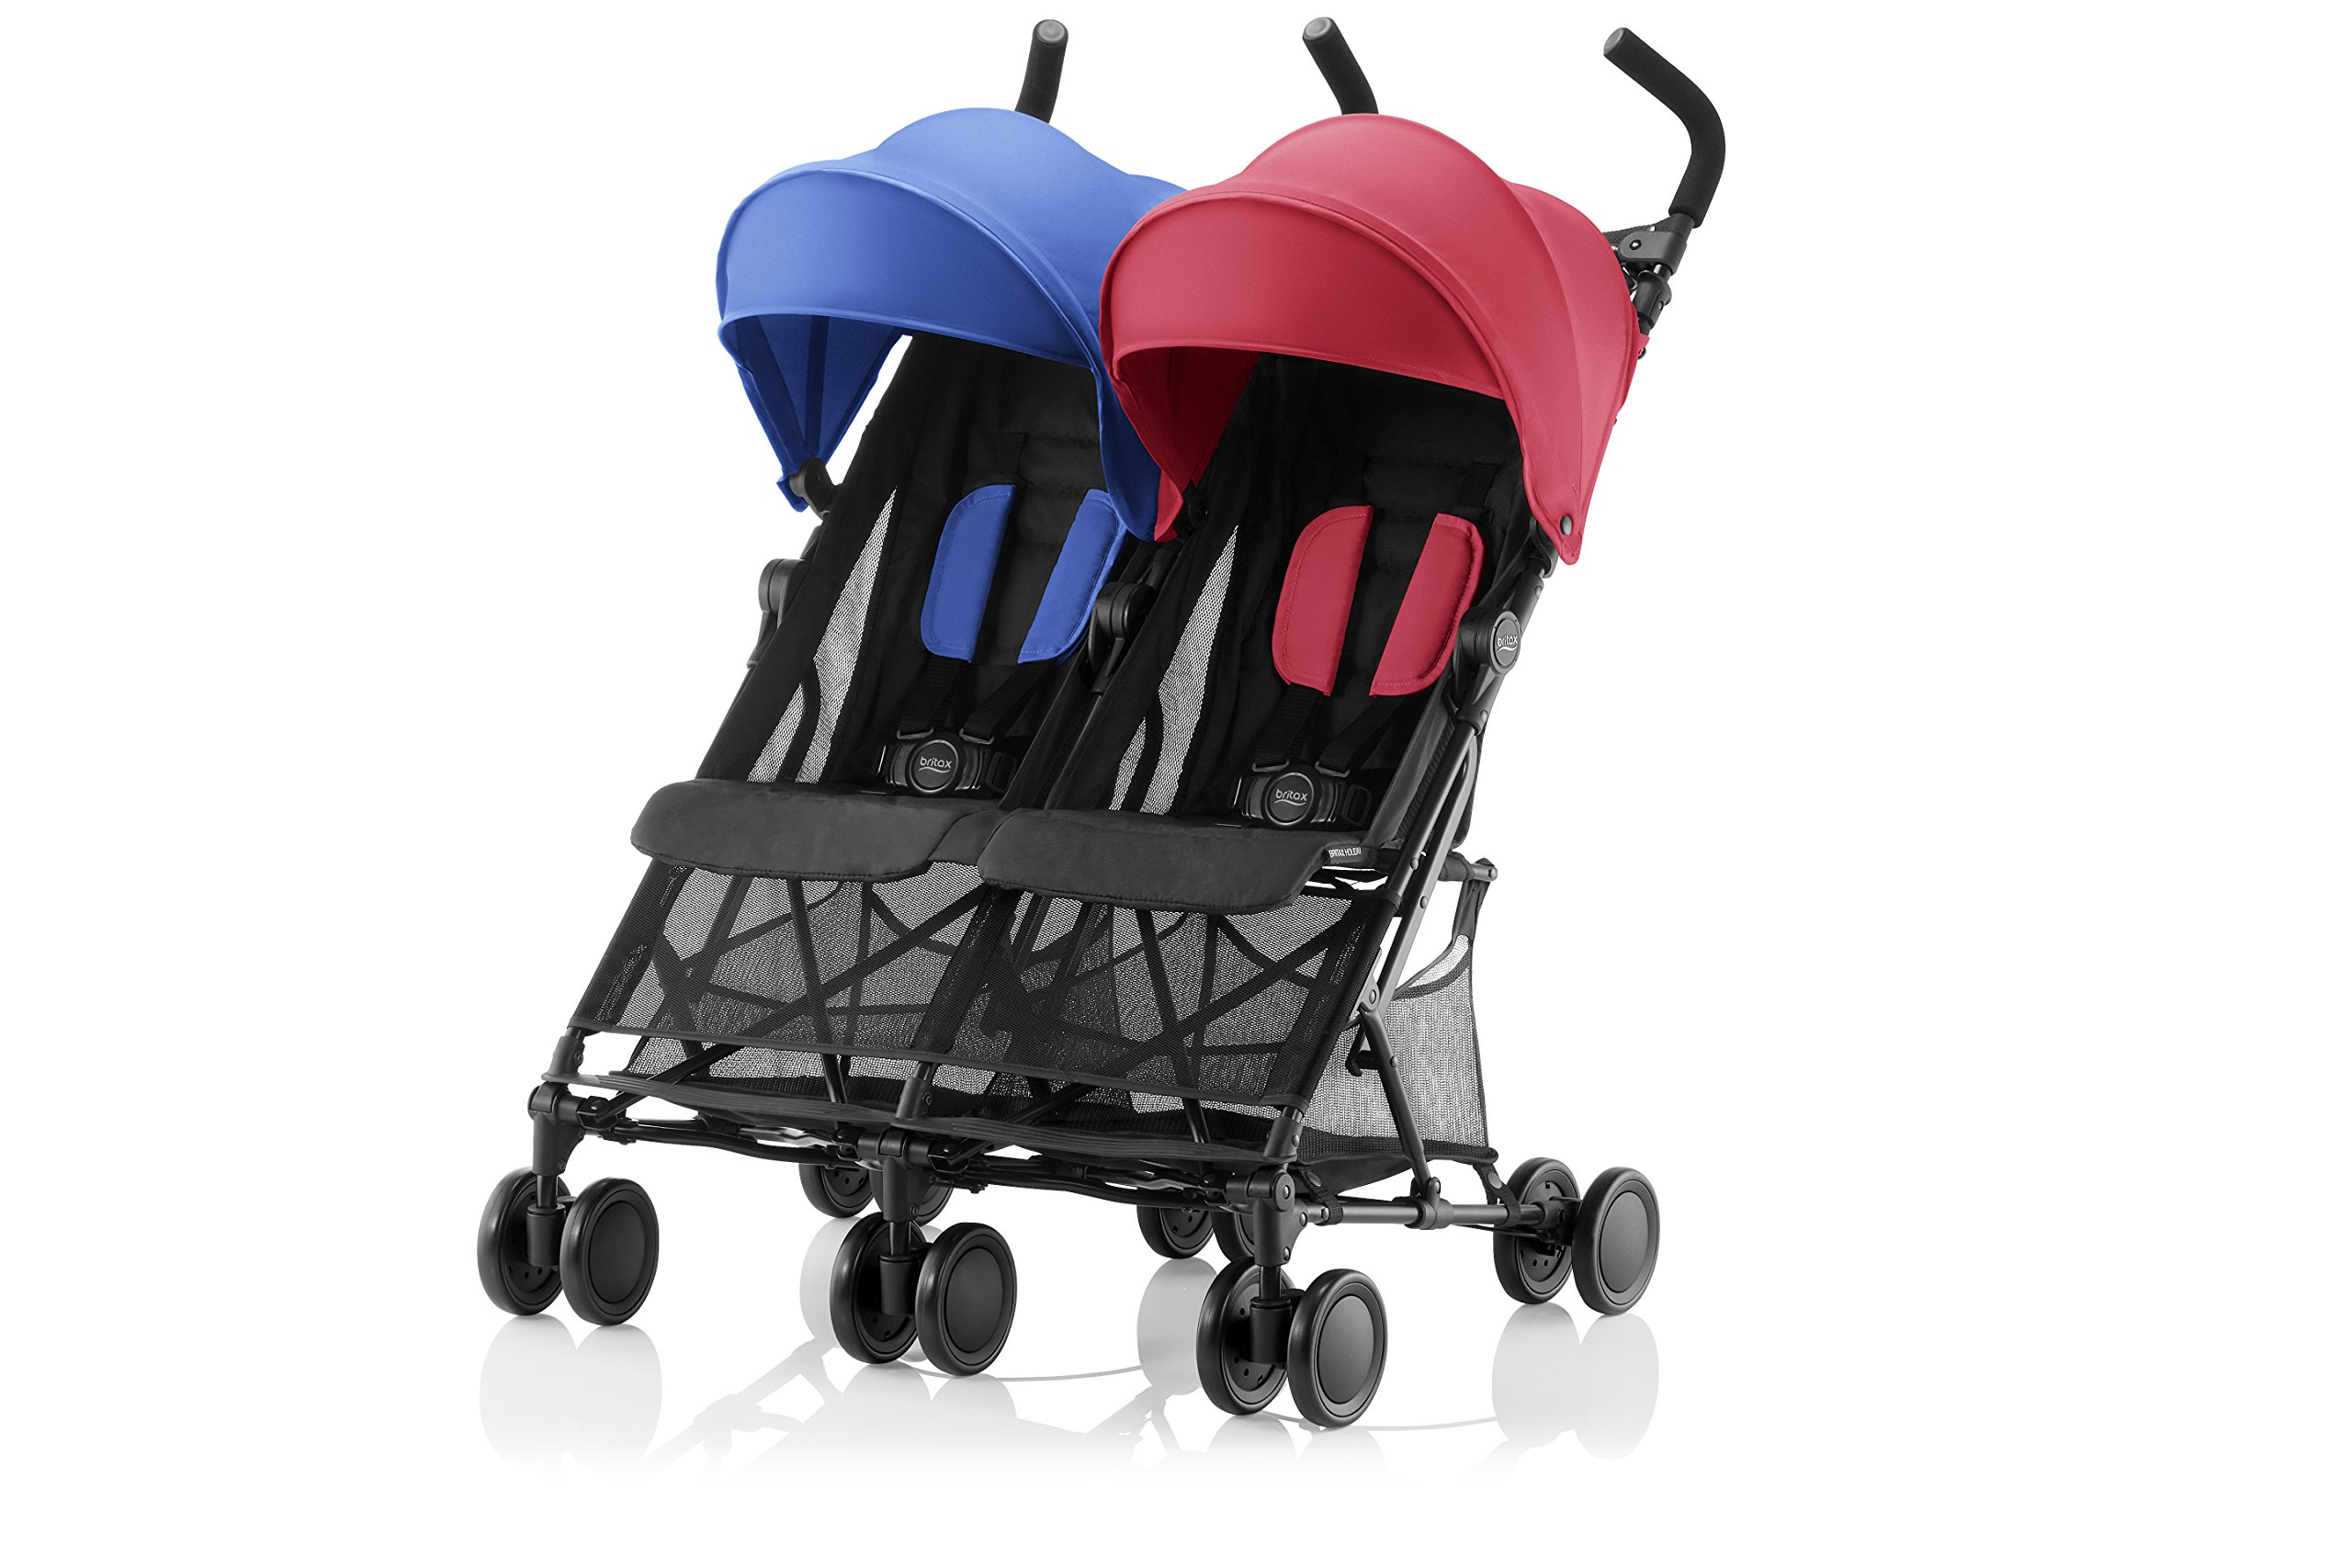 Britax Römer HOLIDAY DOUBLE Pushchair and Raincover (6 Months-15kg|3 years) - Red/Blue Britax Römer With its easy fold the buggy reduces to a compact size that is not only freestanding, but also easy to handle with the convenient carry straps The backrests can be reclined independently which gives you the flexibility to provide a relaxing sleeping position for each child individually To keep your child comfortable on hot days, the seat unit has mesh panels and the large hood has a sun visor, proividing protective shade for each little passenger 2